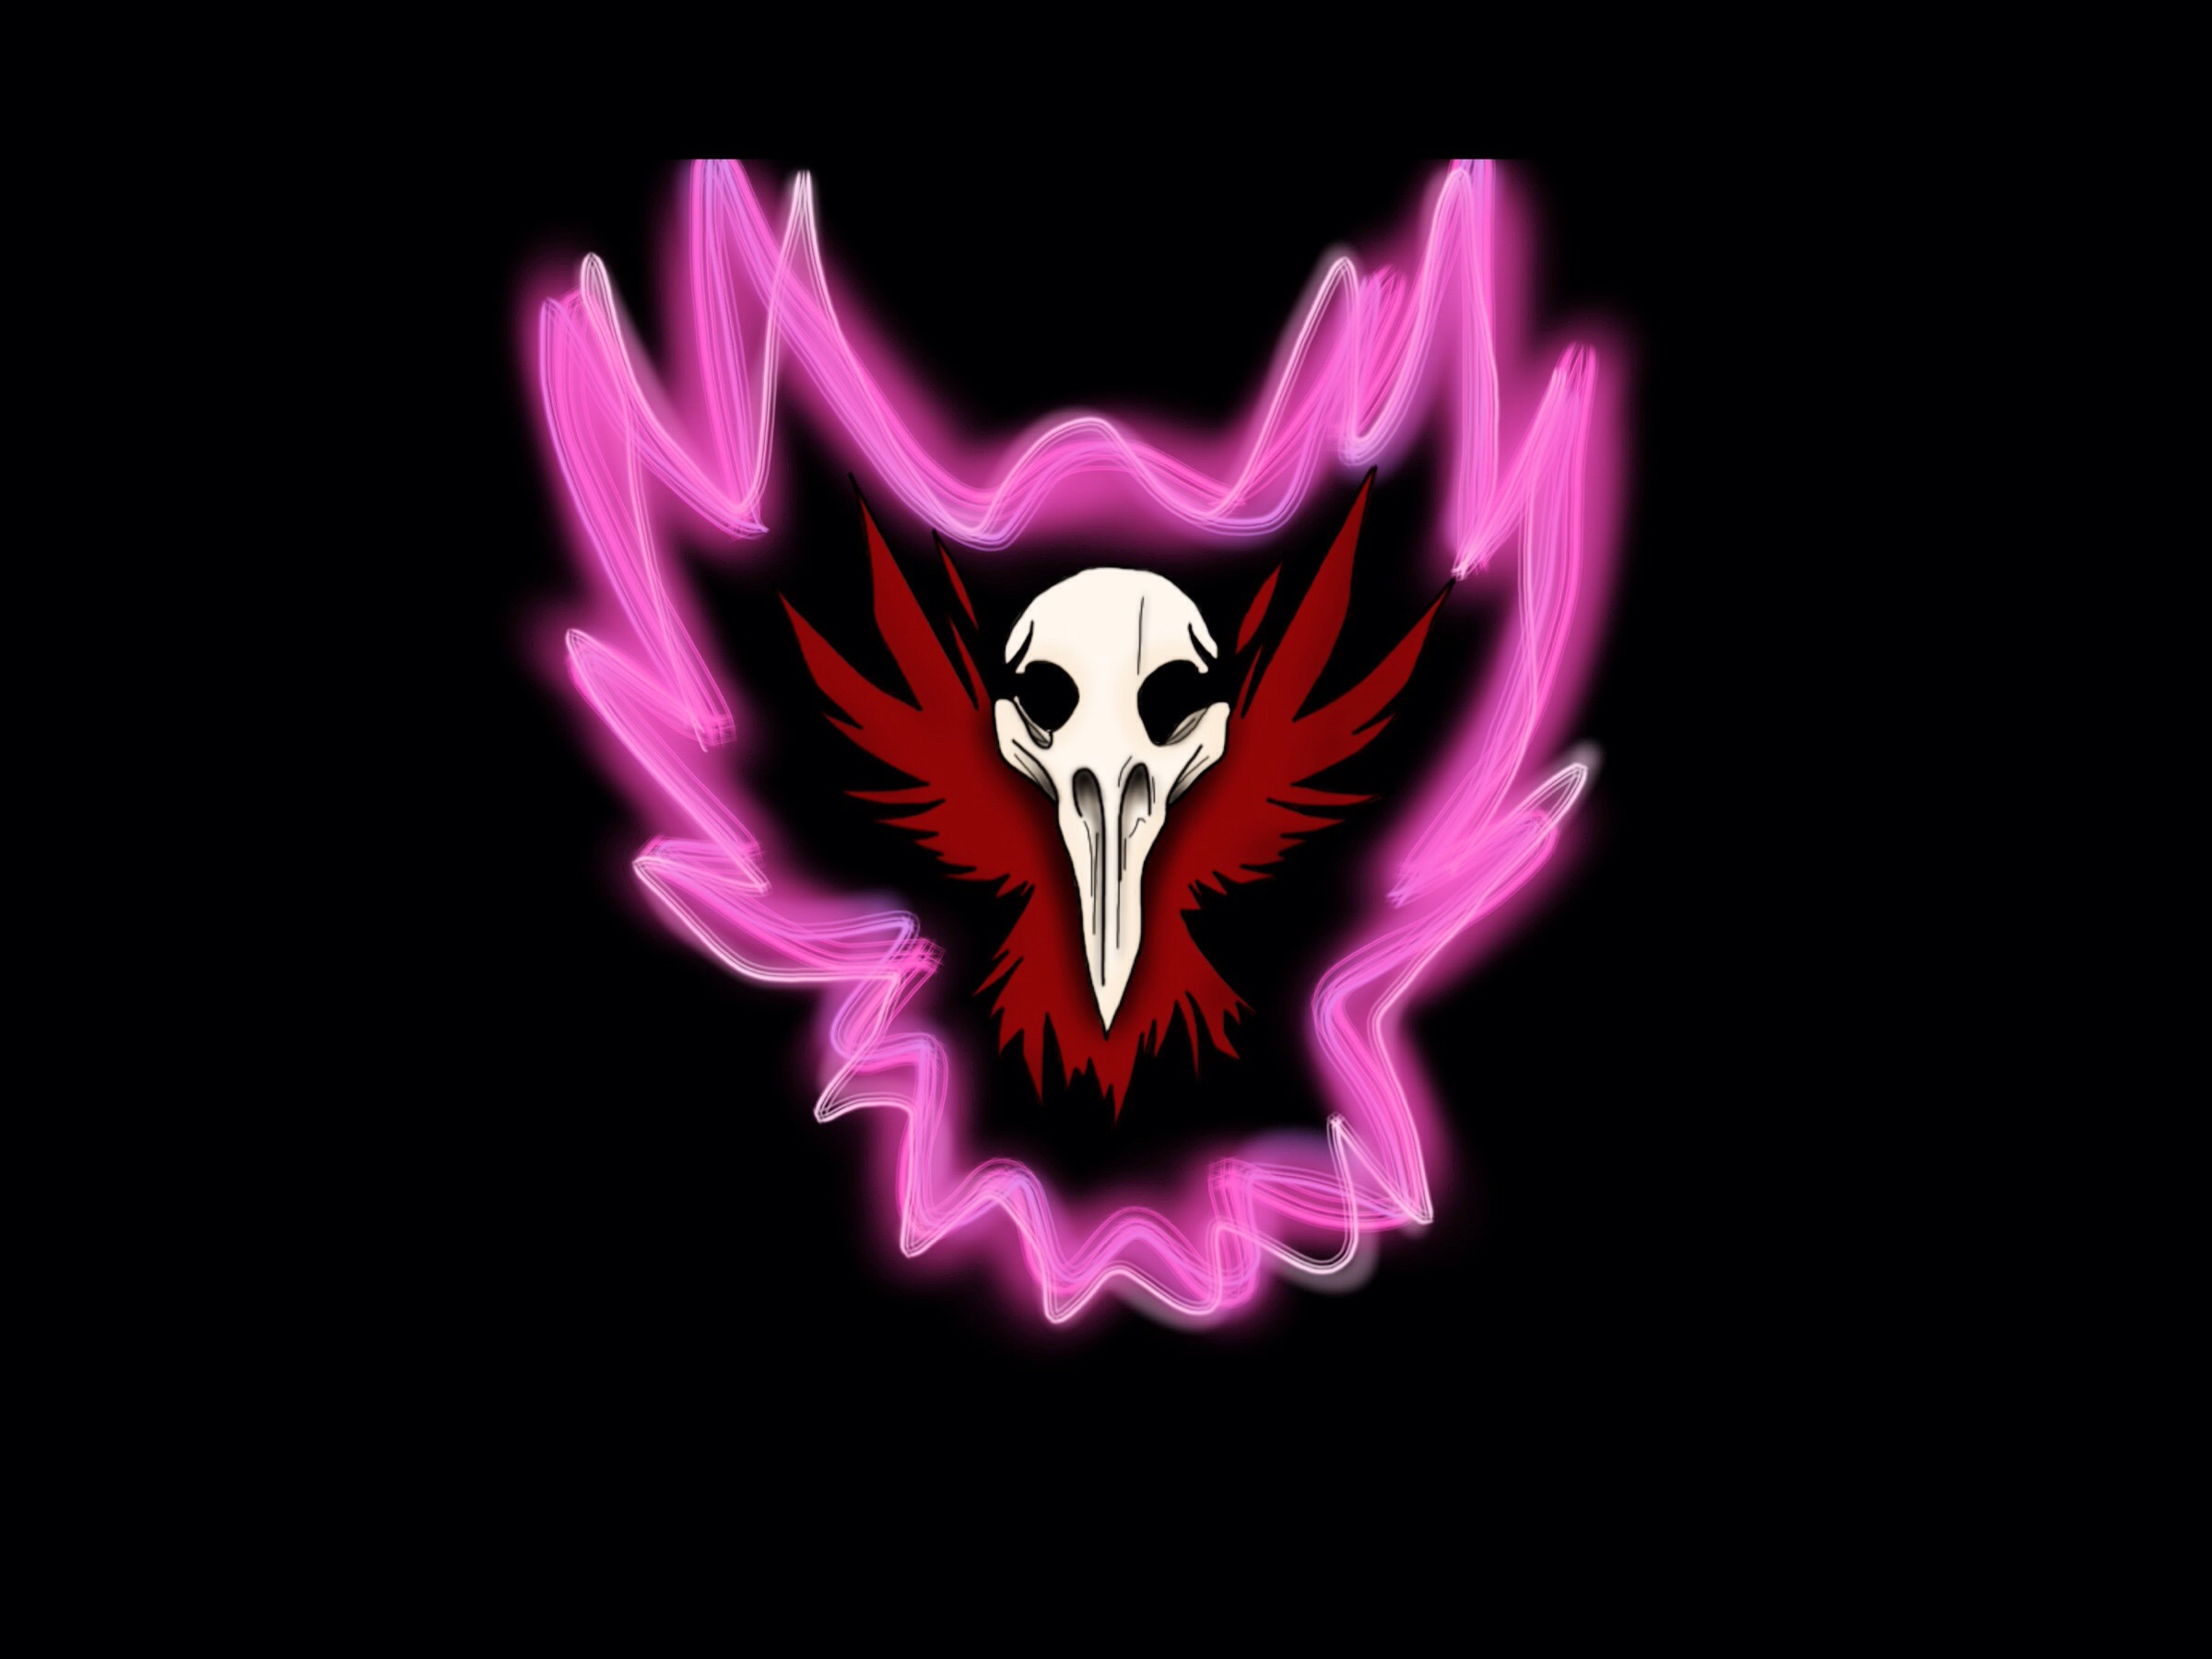 Infamous Second Son Iphone Wallpaper Posted By Ethan Cunningham